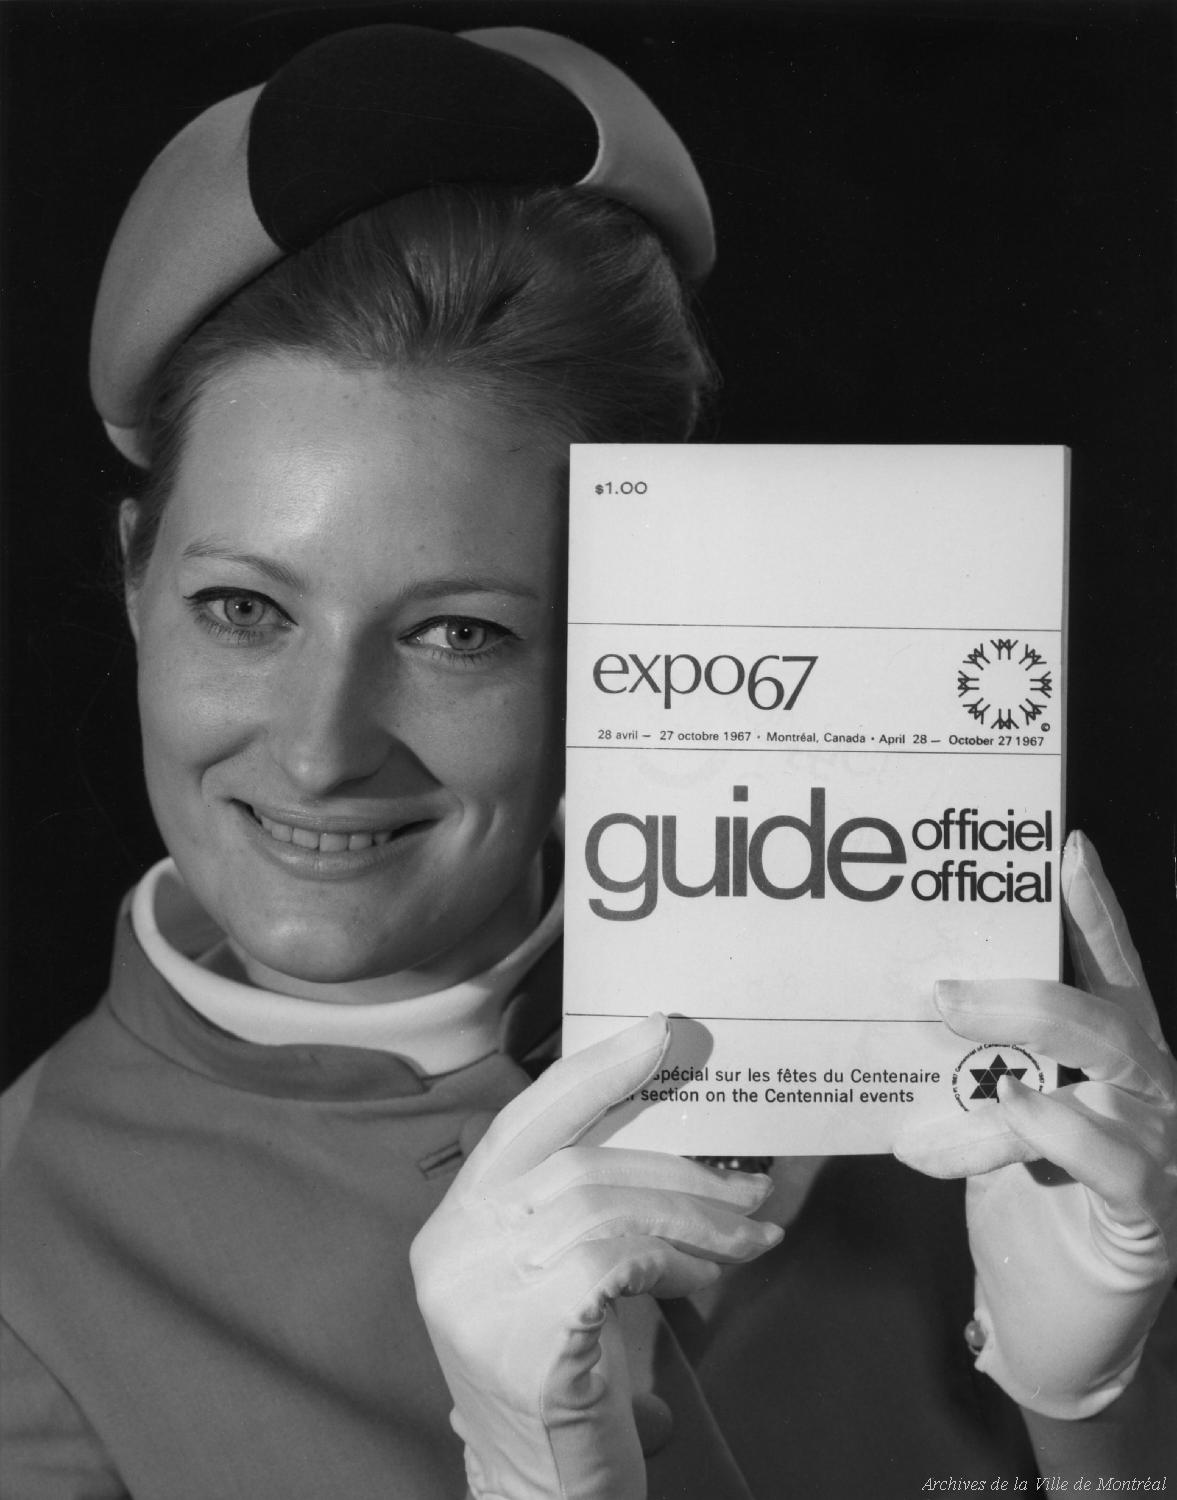 An Expo '67 hostess with publicity document